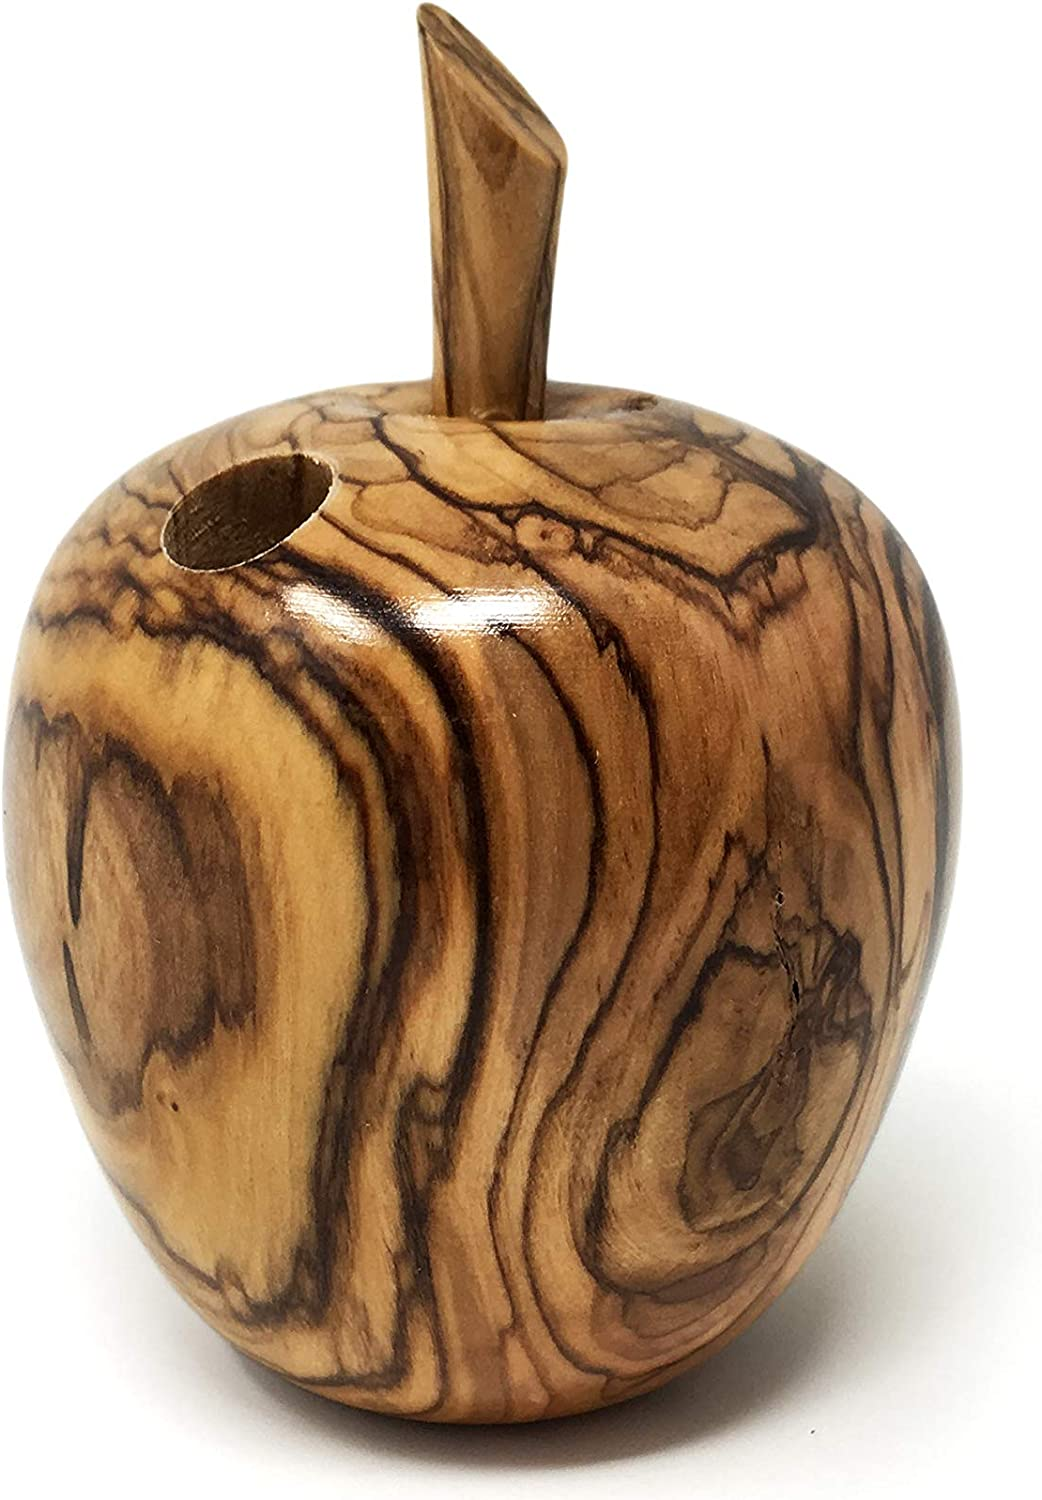 AramediA Olive Wood Handcrafted in The Holy Land by Artisans Apple Shaped Toothpick Holder.-(6 X 6 X 8 cm)